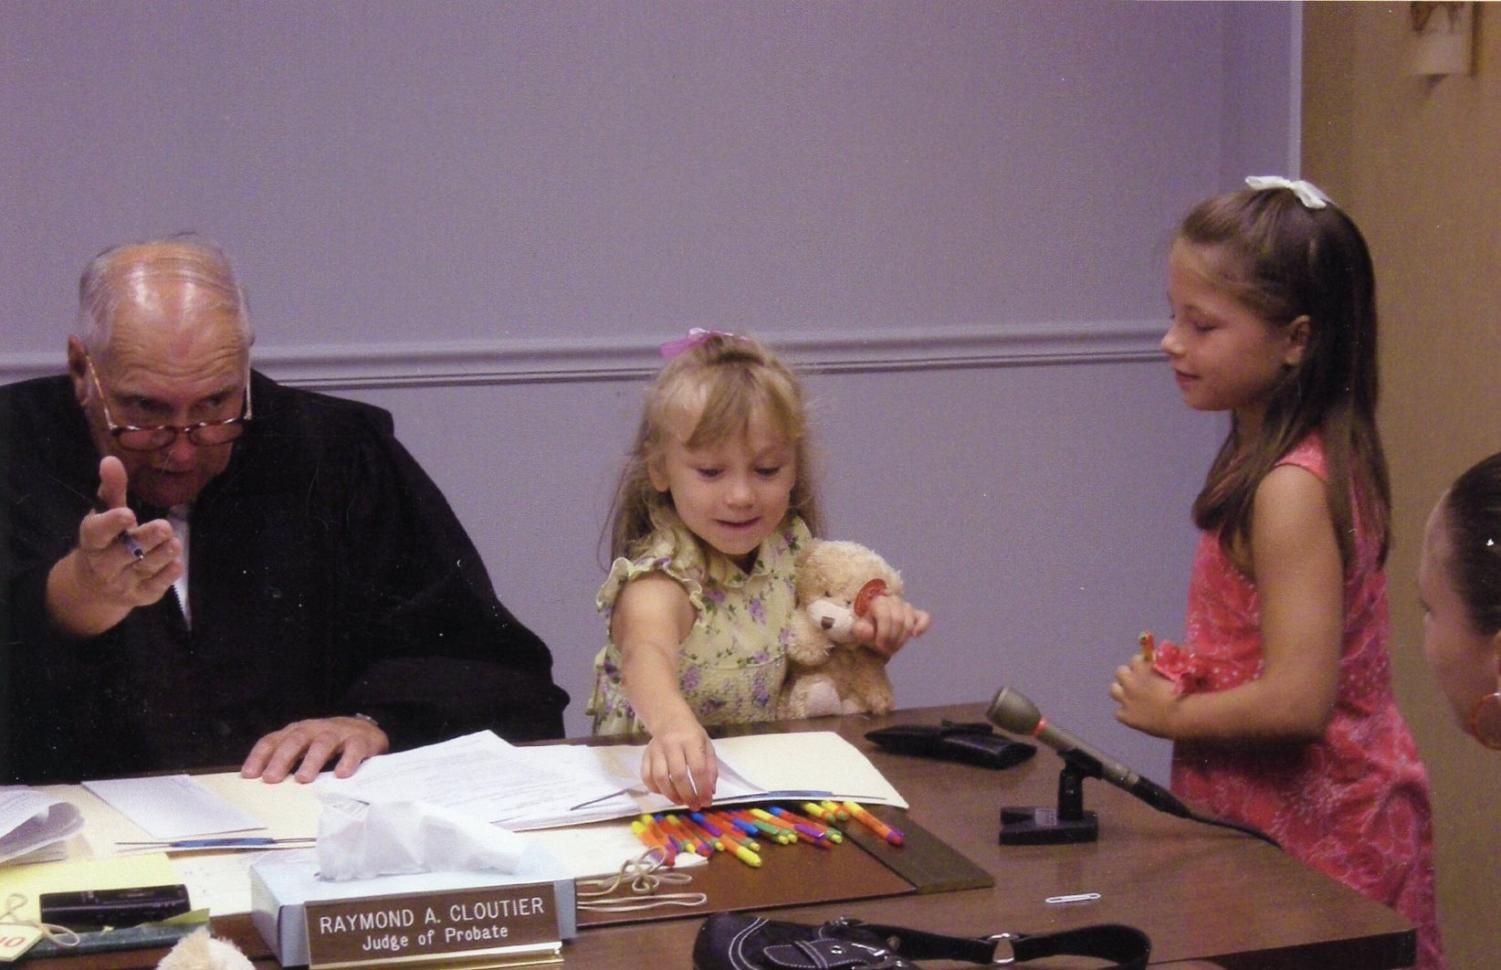 Alyssa and Marissa Neal sit with a judge and sign various documents at their adoption hearing.